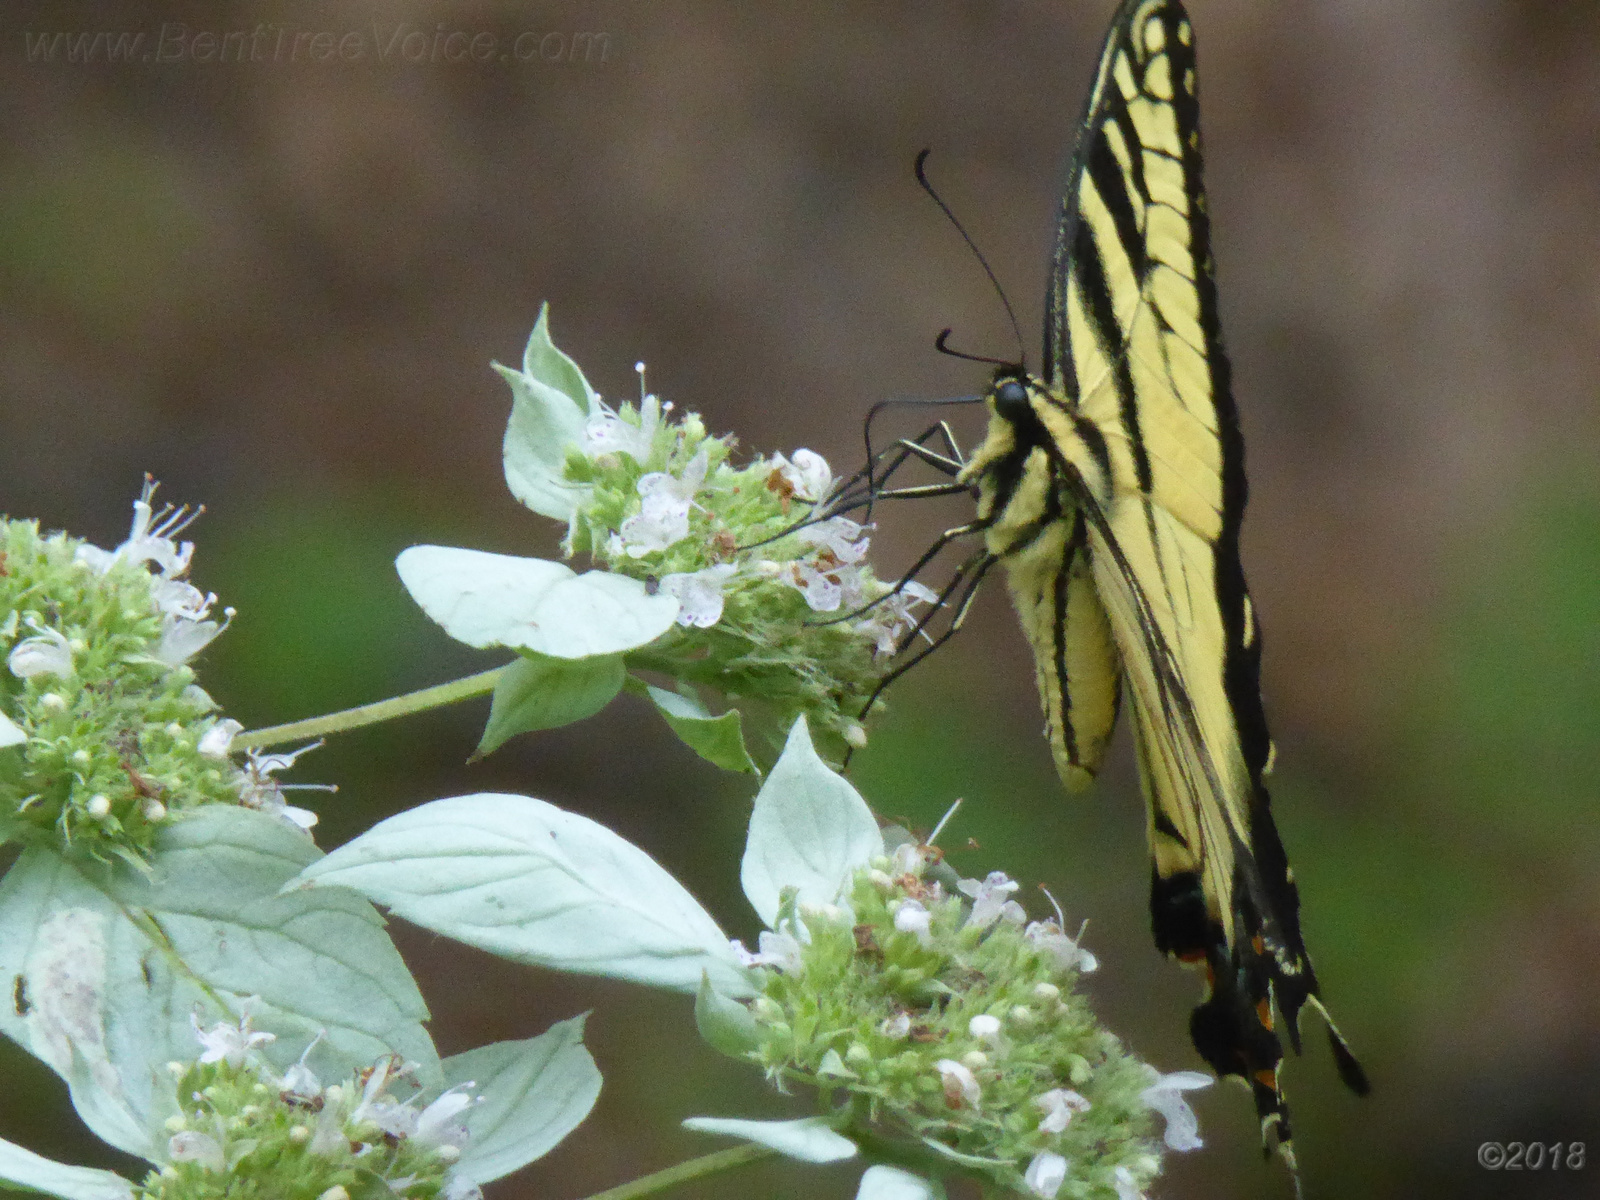 August 11, 2018 - Butterfly on Mountain Mint in Bent Tree